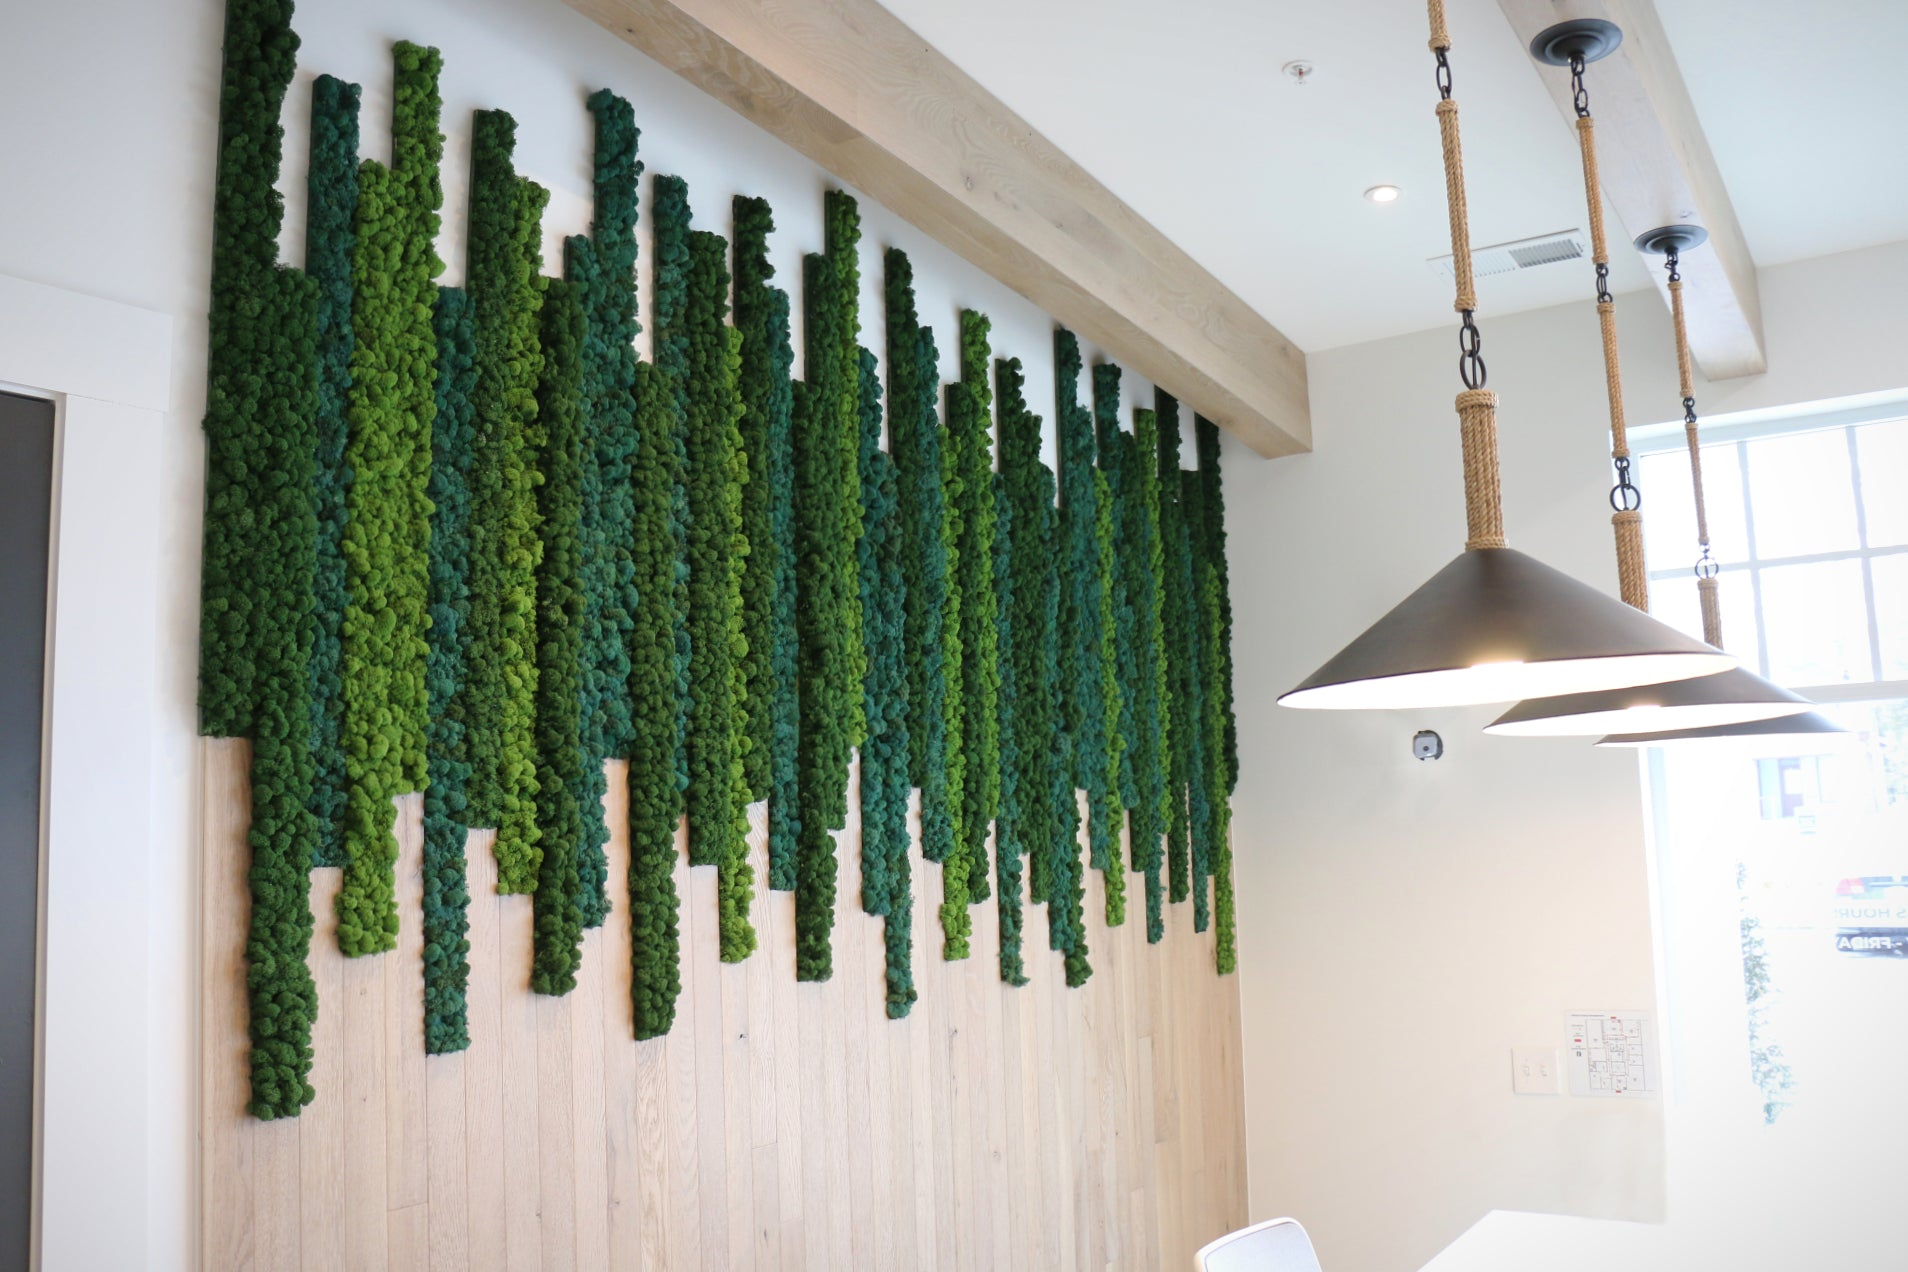 Custom moss art with alternating vertical stripes of assorted colors of moss. Moss art by Oakland Green Interiors in Columbus, Ohio.